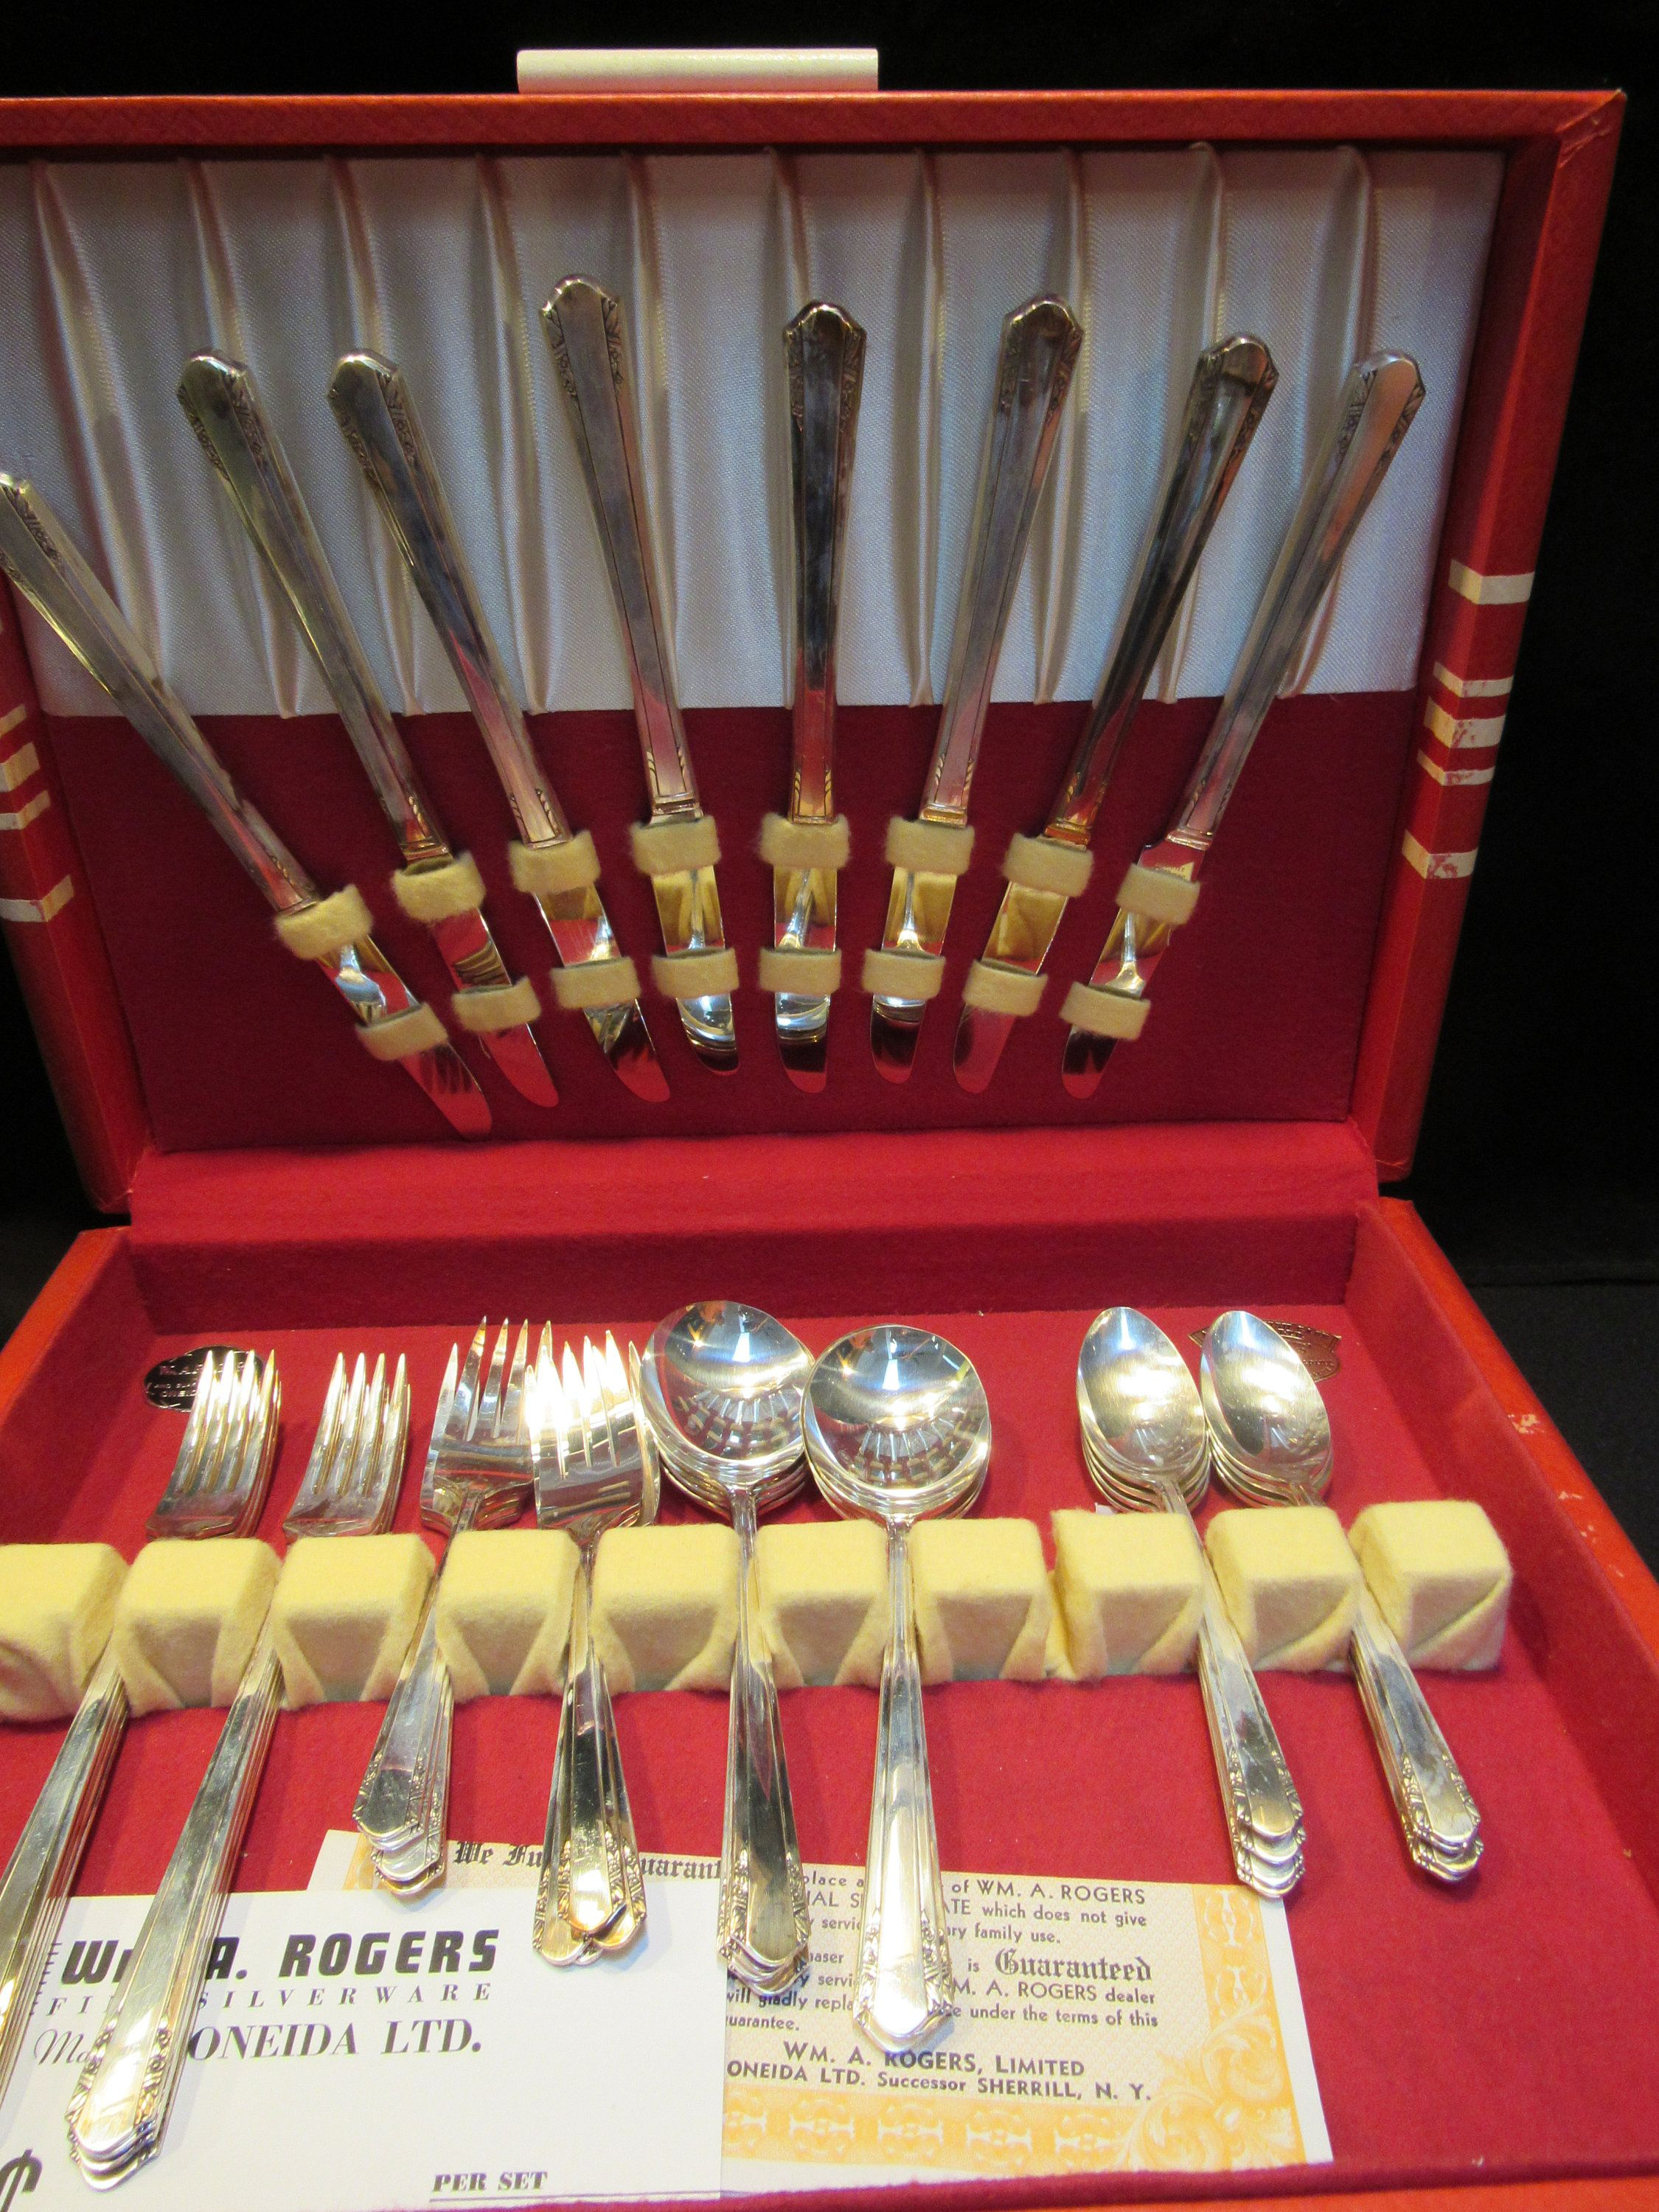 Vista Silverplate 1940 Wm A Rogers Sectional By Oneida Etsy In 2020 Oneida Silver Silverplate Flatware Silver Plate